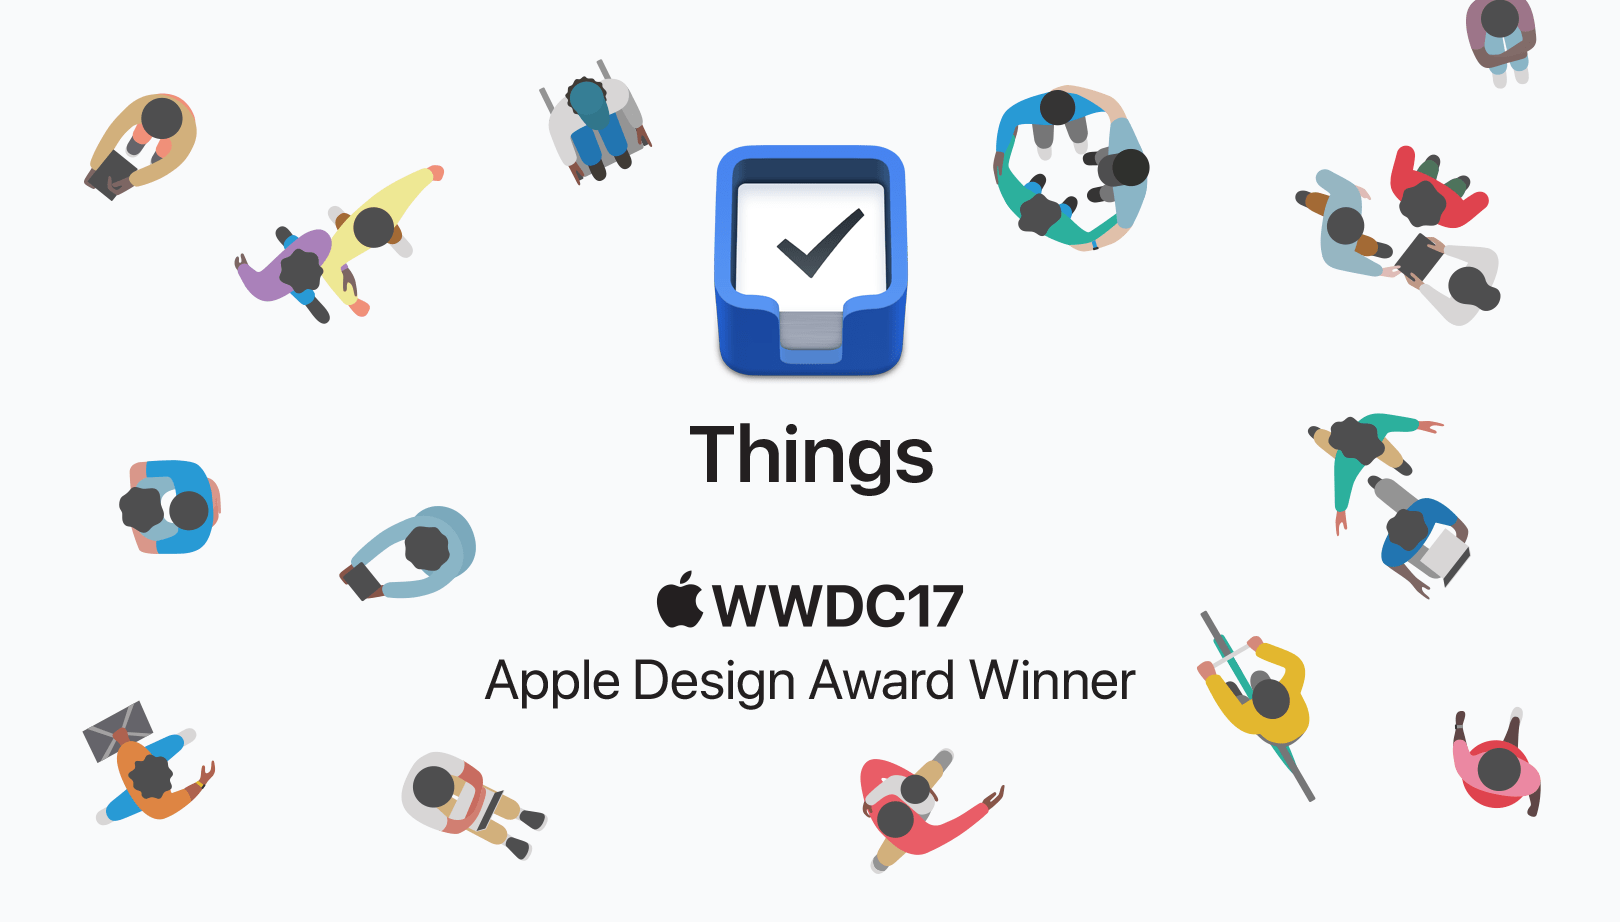 Things - Apple Design Award Winner 2017